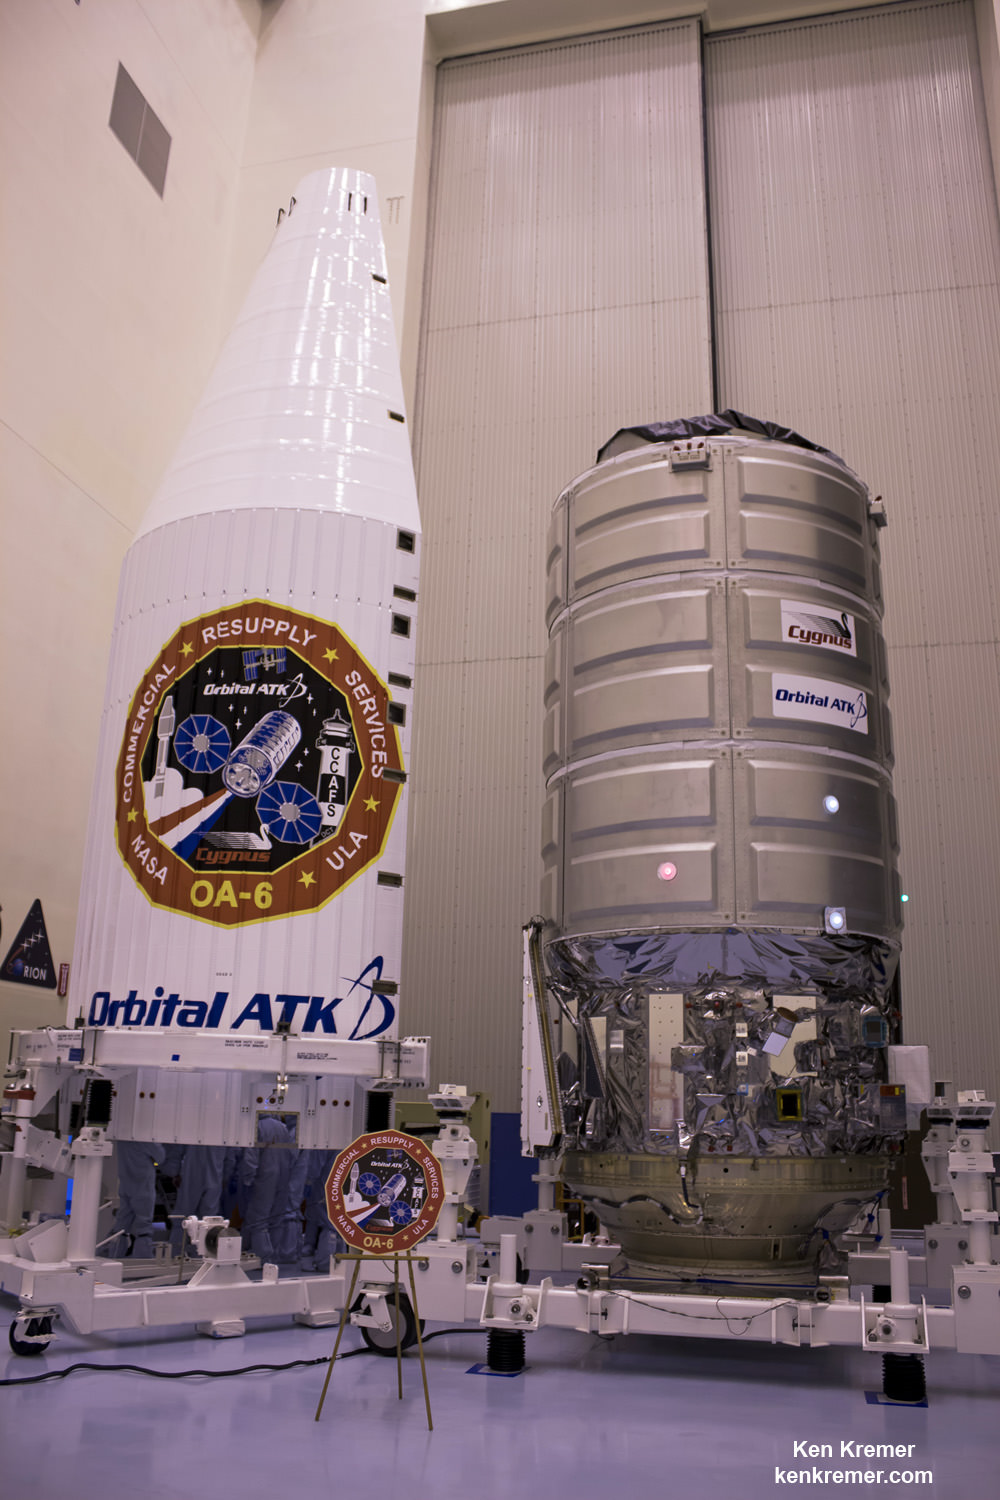 A Cygnus cargo spacecraft named the SS Rick Husband  is being prepared inside the Payload Hazardous Servicing Facility at NASA's Kennedy Space Center for upcoming Orbital ATK CRS-6/OA-6 mission to deliver hardware and supplies to the International Space Station. Cygnus is scheduled to lift off atop a United Launch Alliance Atlas V rocket on March 22, 2016.  Credit: Ken Kremer/kenkremer.com